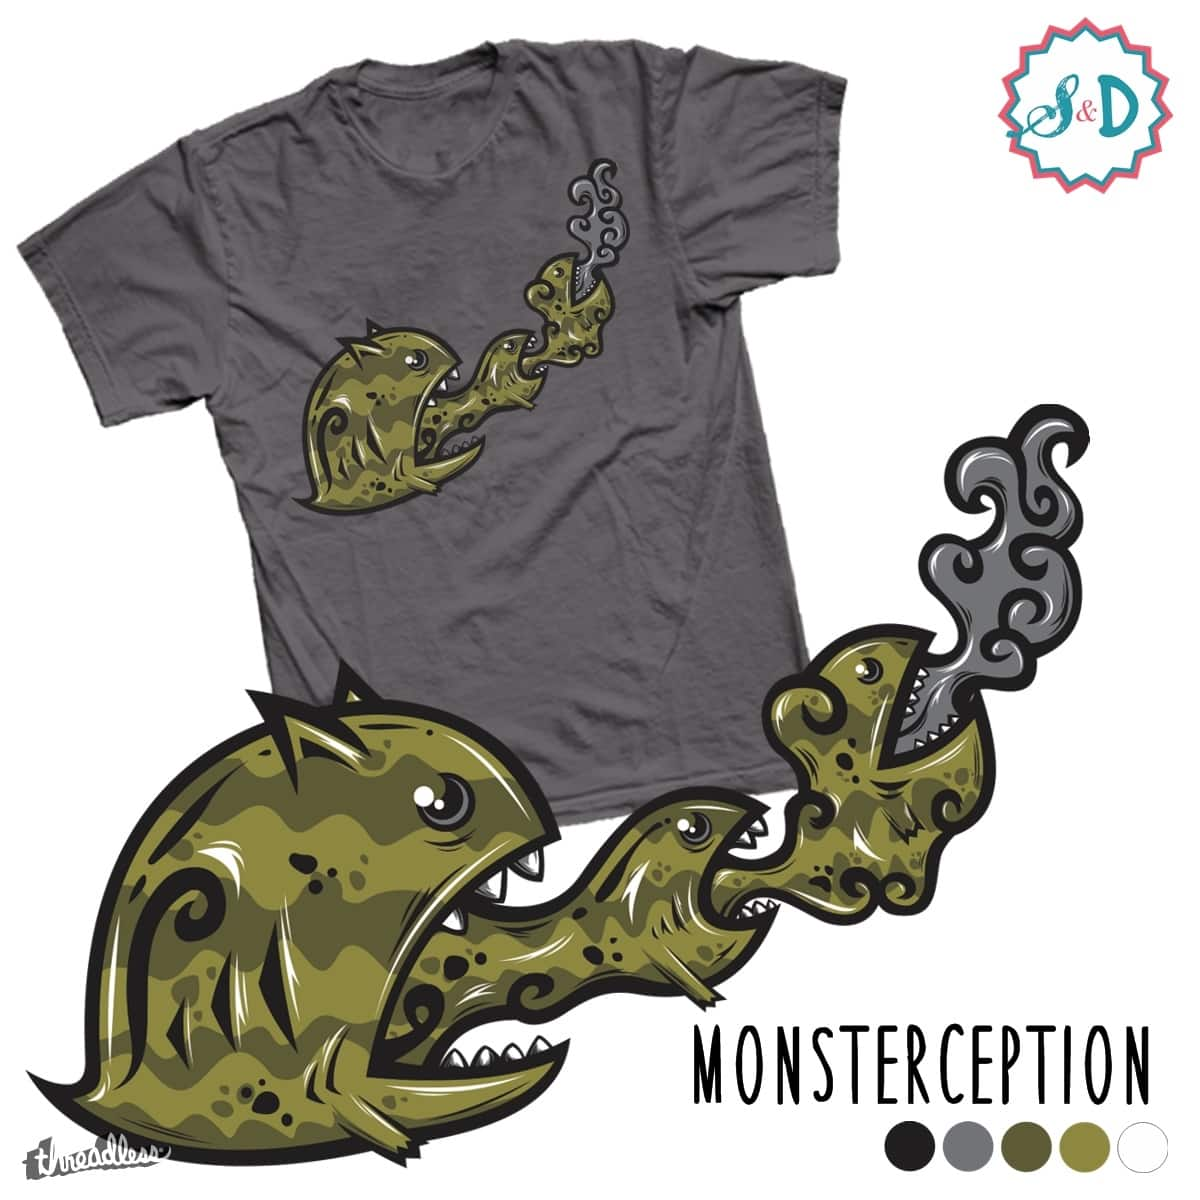 Monsterception by ScribbleNDoodle on Threadless